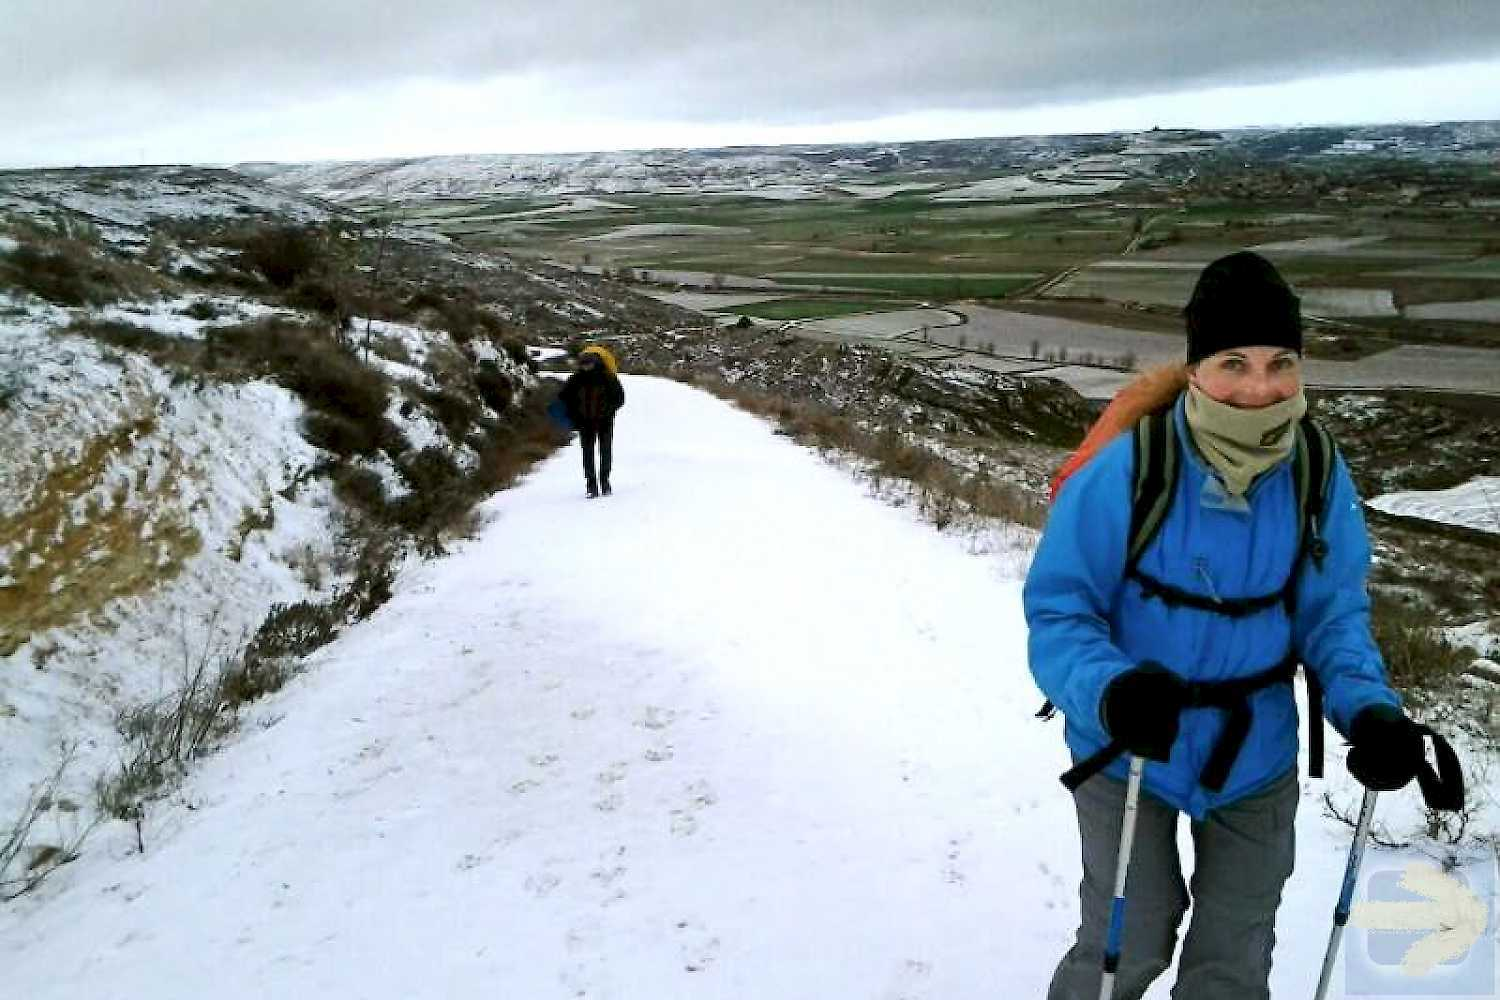 The winter Camino